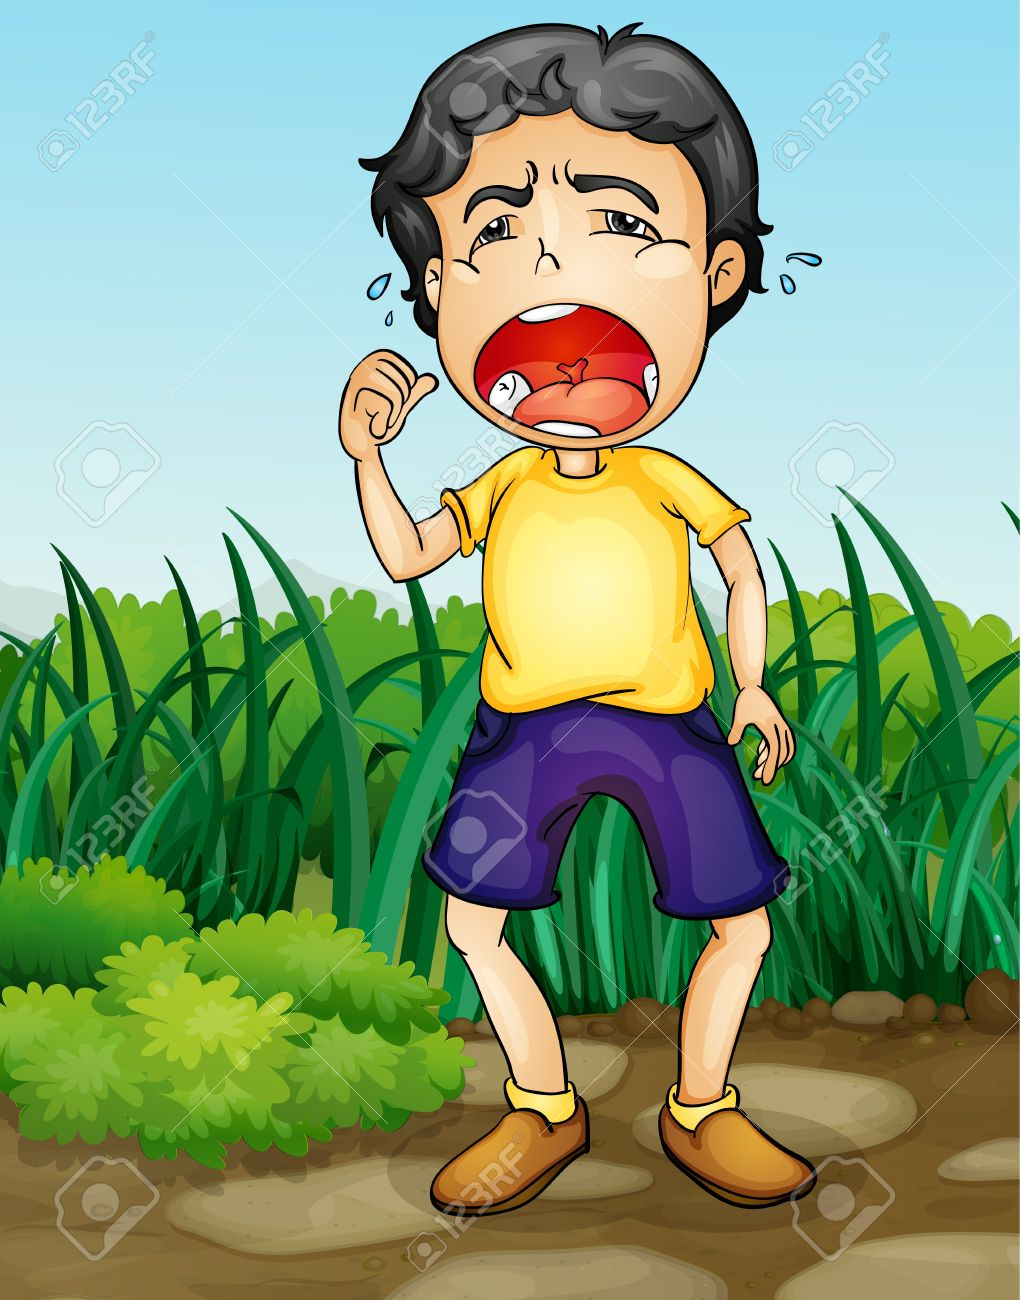 Illustration of a boy crying in a garden Stock Vector - 13974837